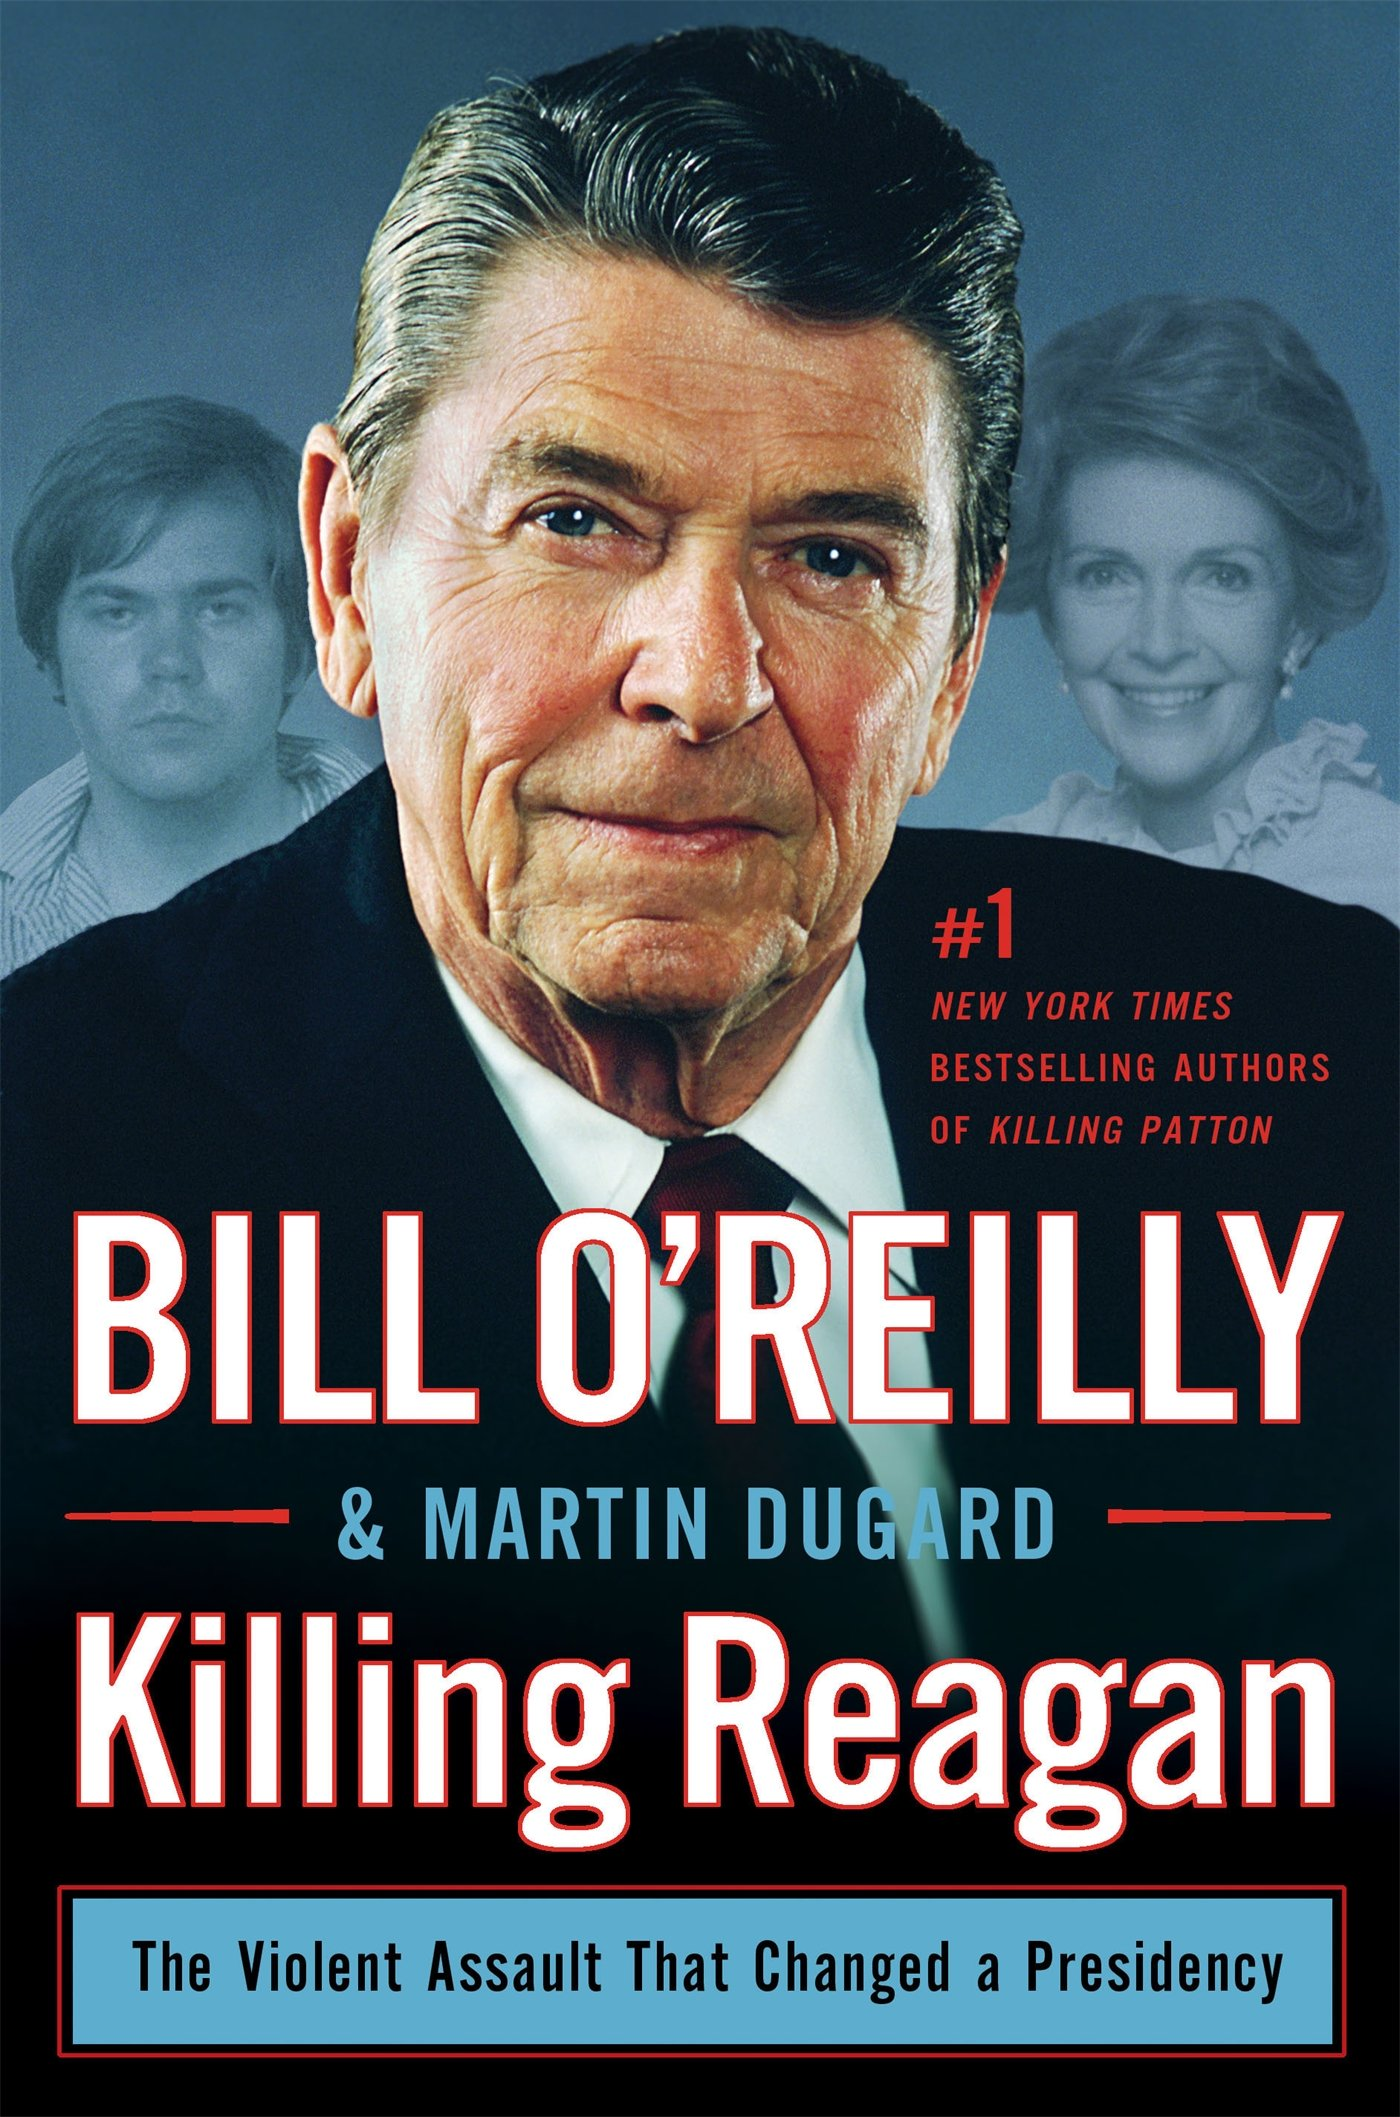 Bill O'Reilly - Killing Reagan